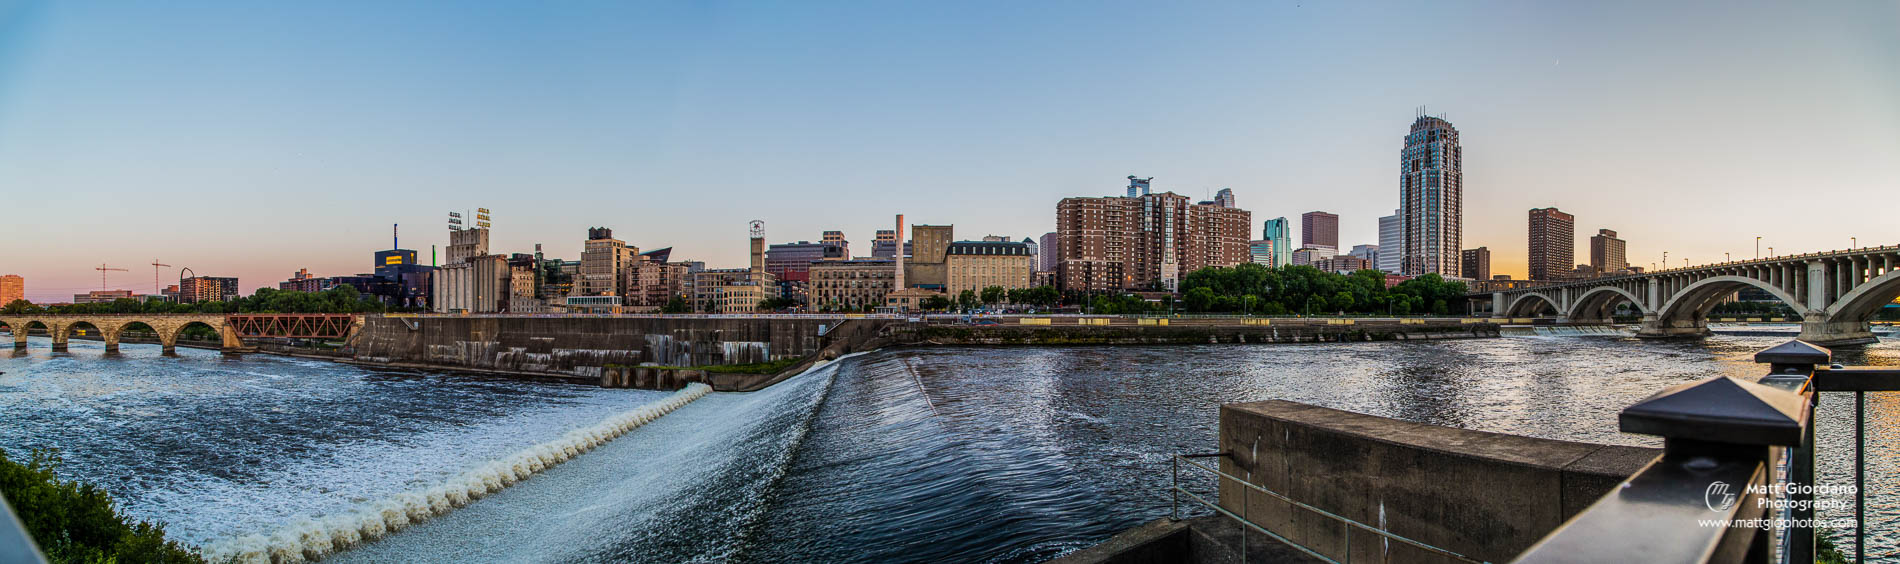 June2017-Minneapolis-IMG_9718-Edit